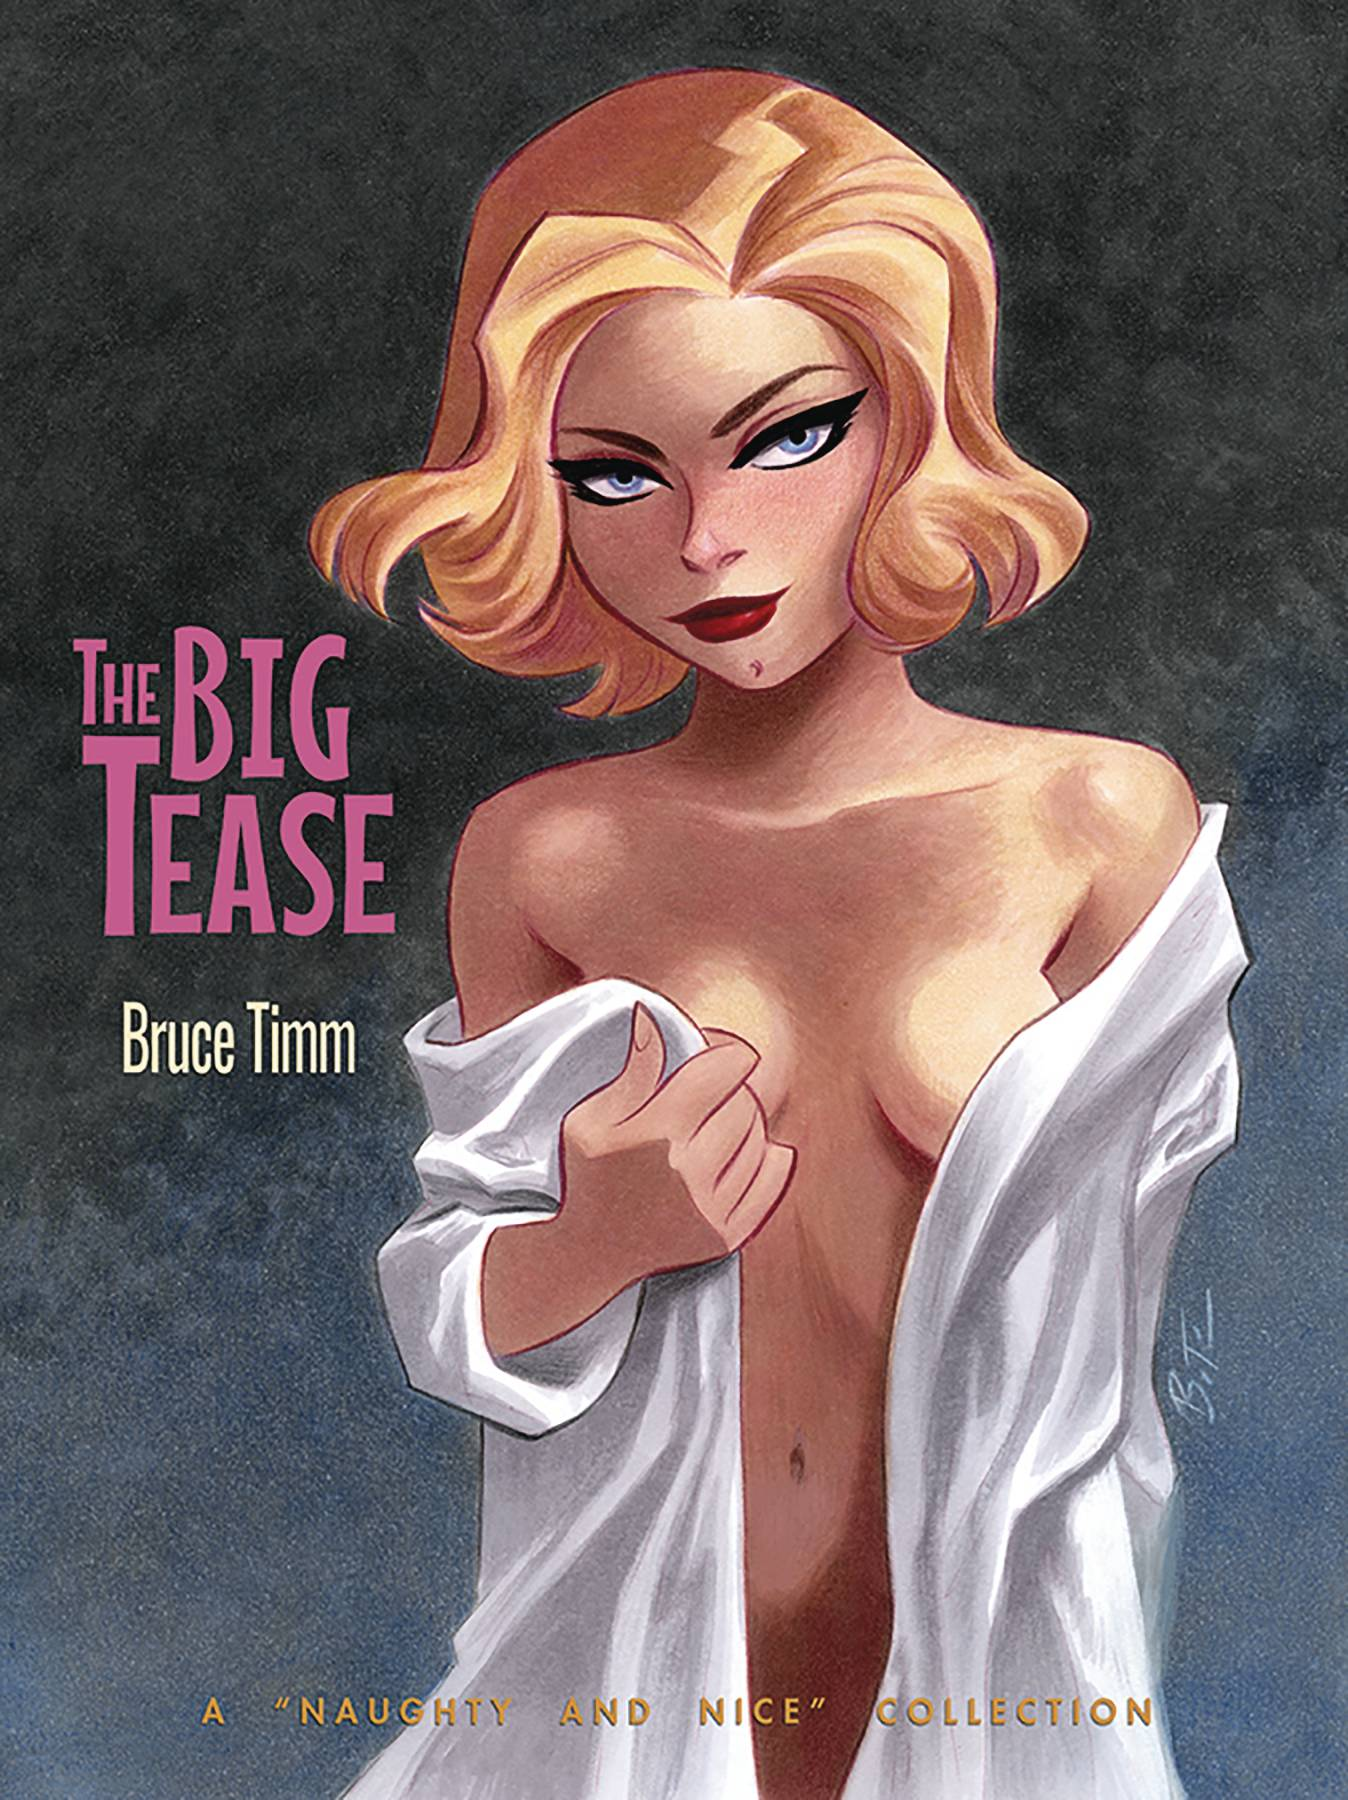 THE BIG TEASE (ART OF BRUCE TIMM) SC